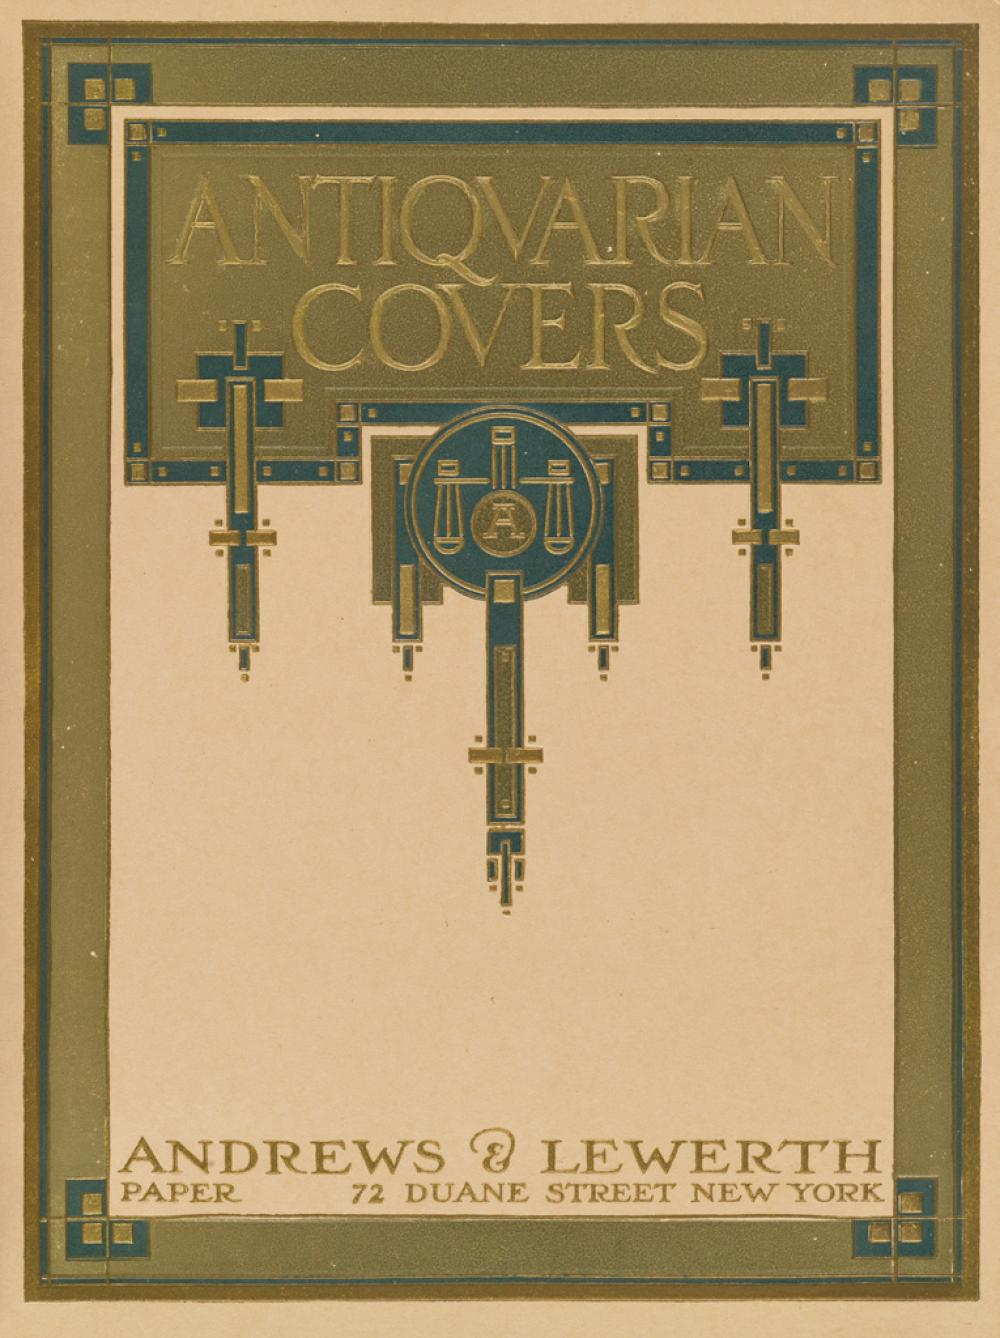 (BOOK ARTS / PRINTING.) Andrews & Lewerth. Antiquarian Covers.